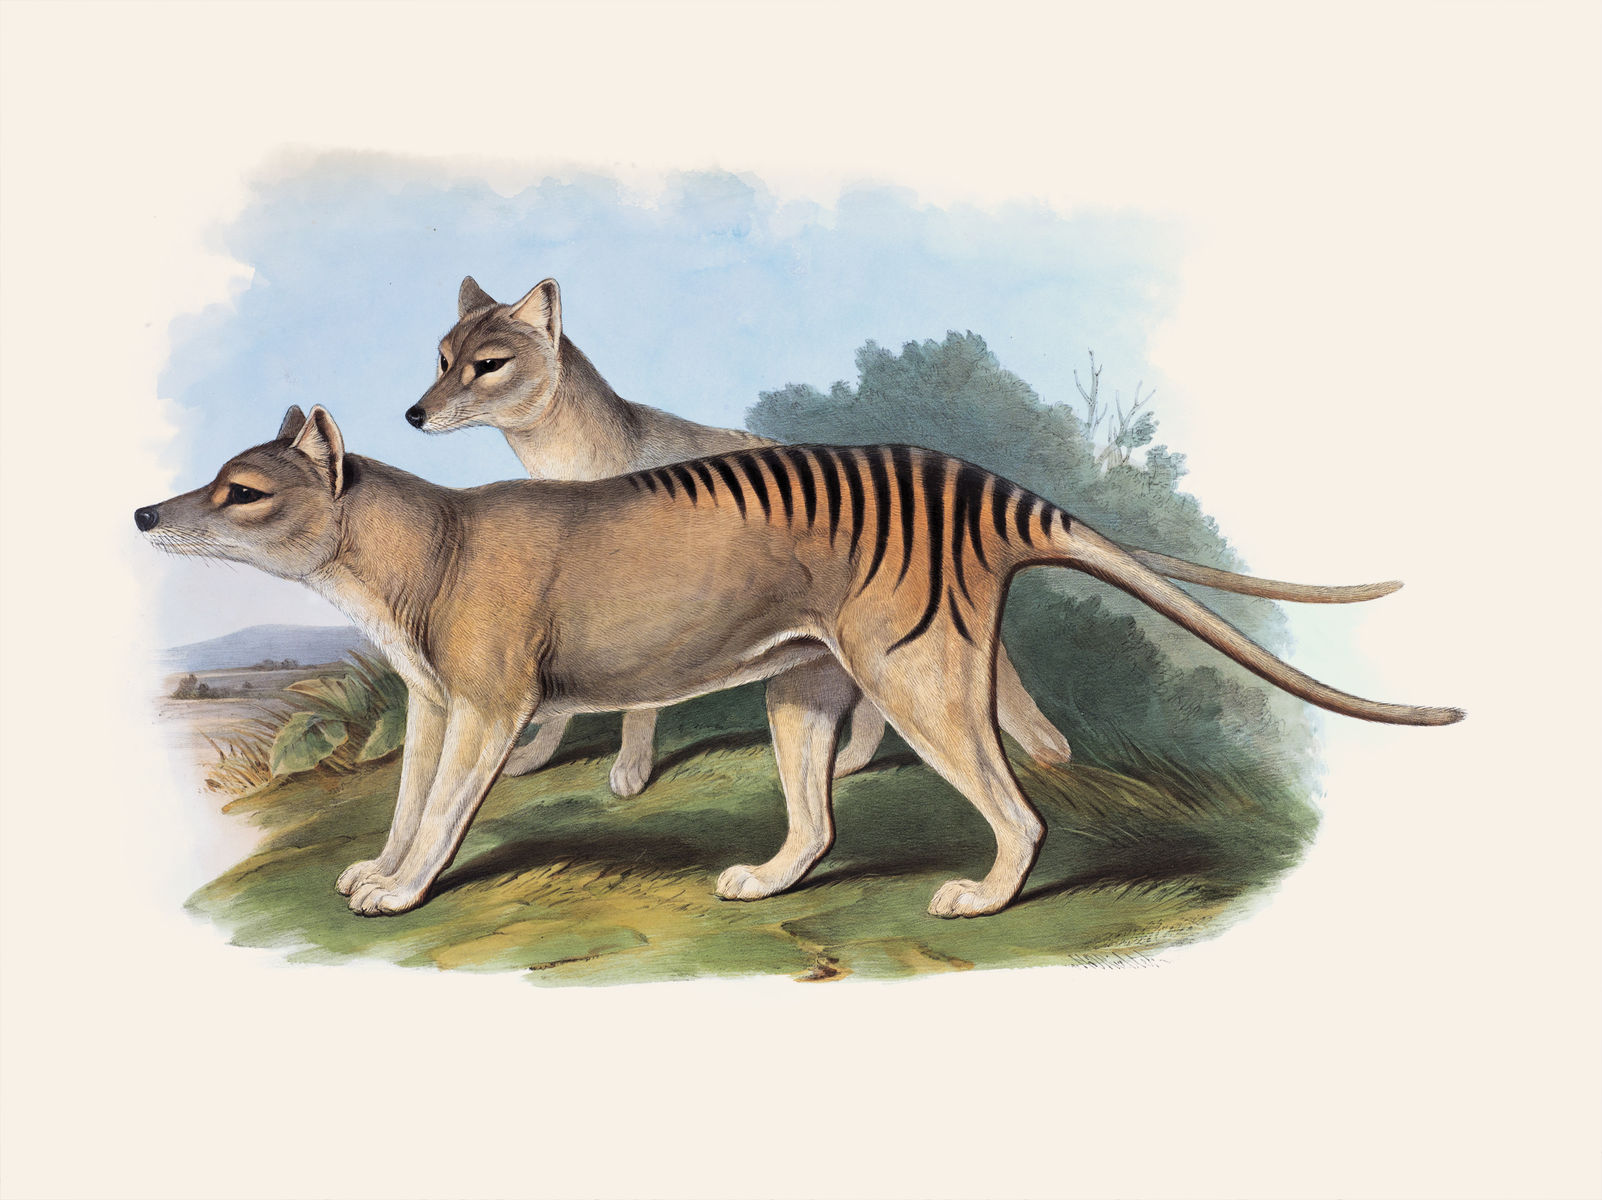 A drawing of the now-extinct Tasmanian tiger, or wolf. Shown as light grey or brown with dark stripes across its rear back. It was the world largest meat-eating marsupial.